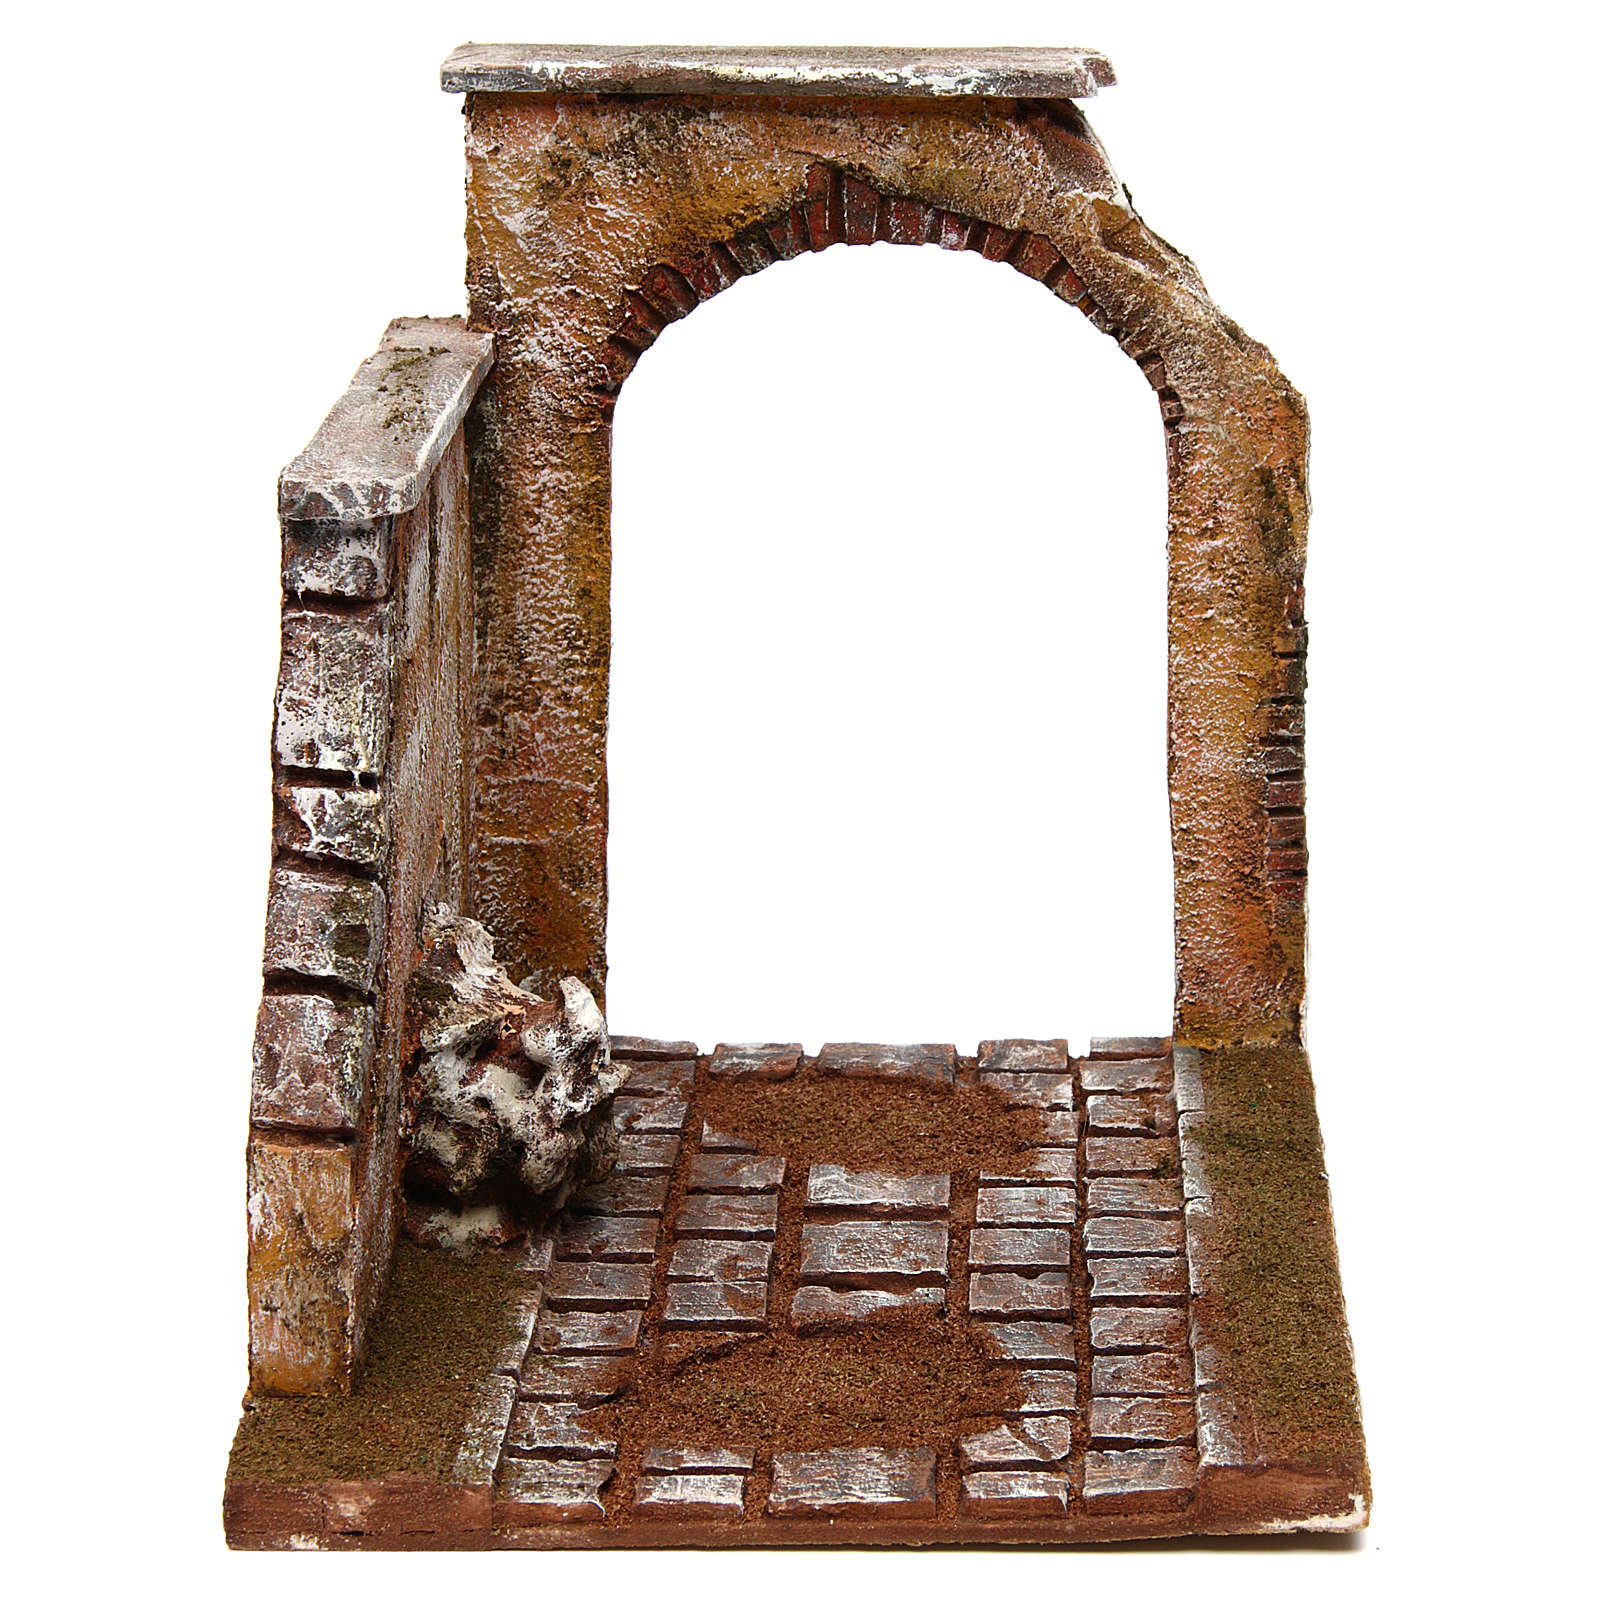 Joinable road part with wall and arch for Nativity Scene 12 cm 4